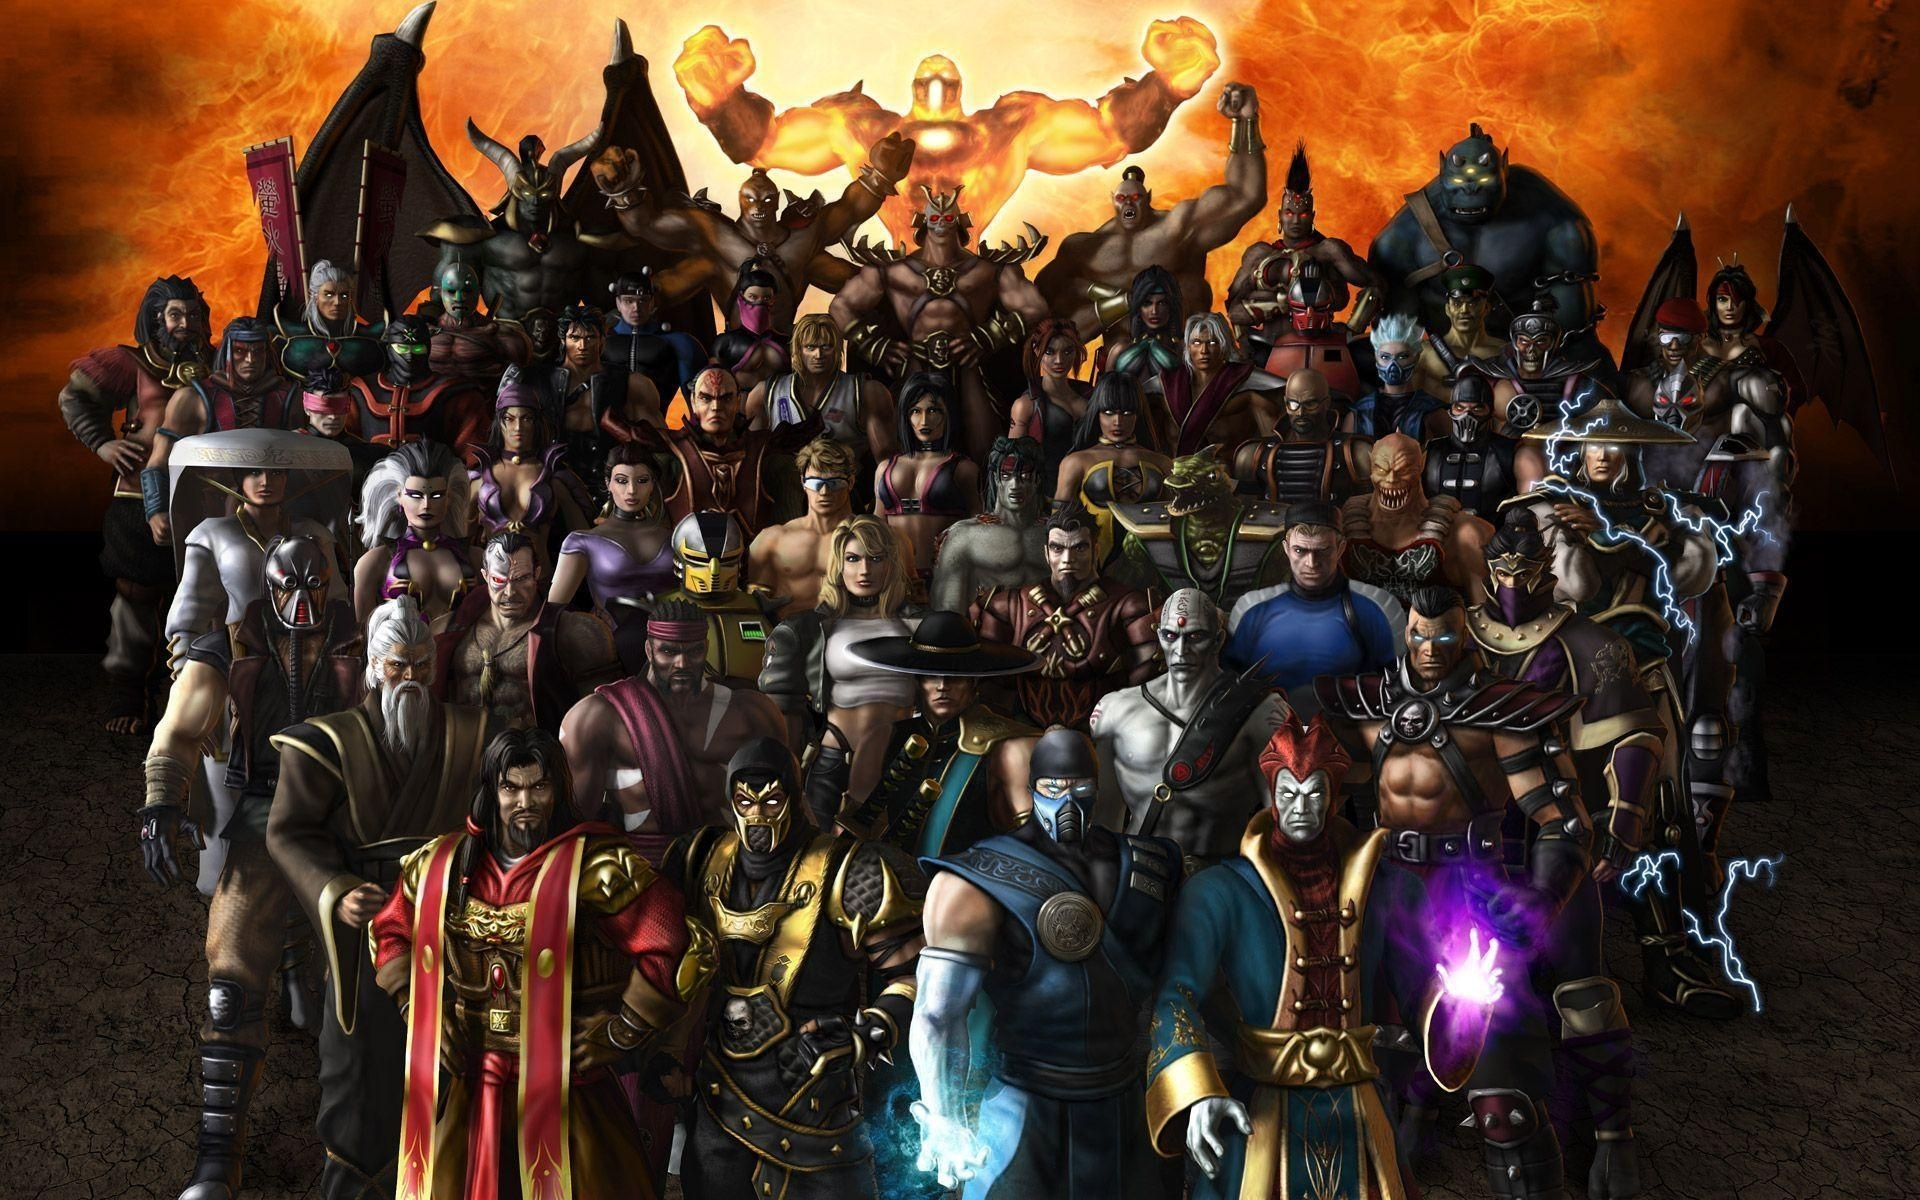 mortal kombat characters wallpapers - wallpaper cave